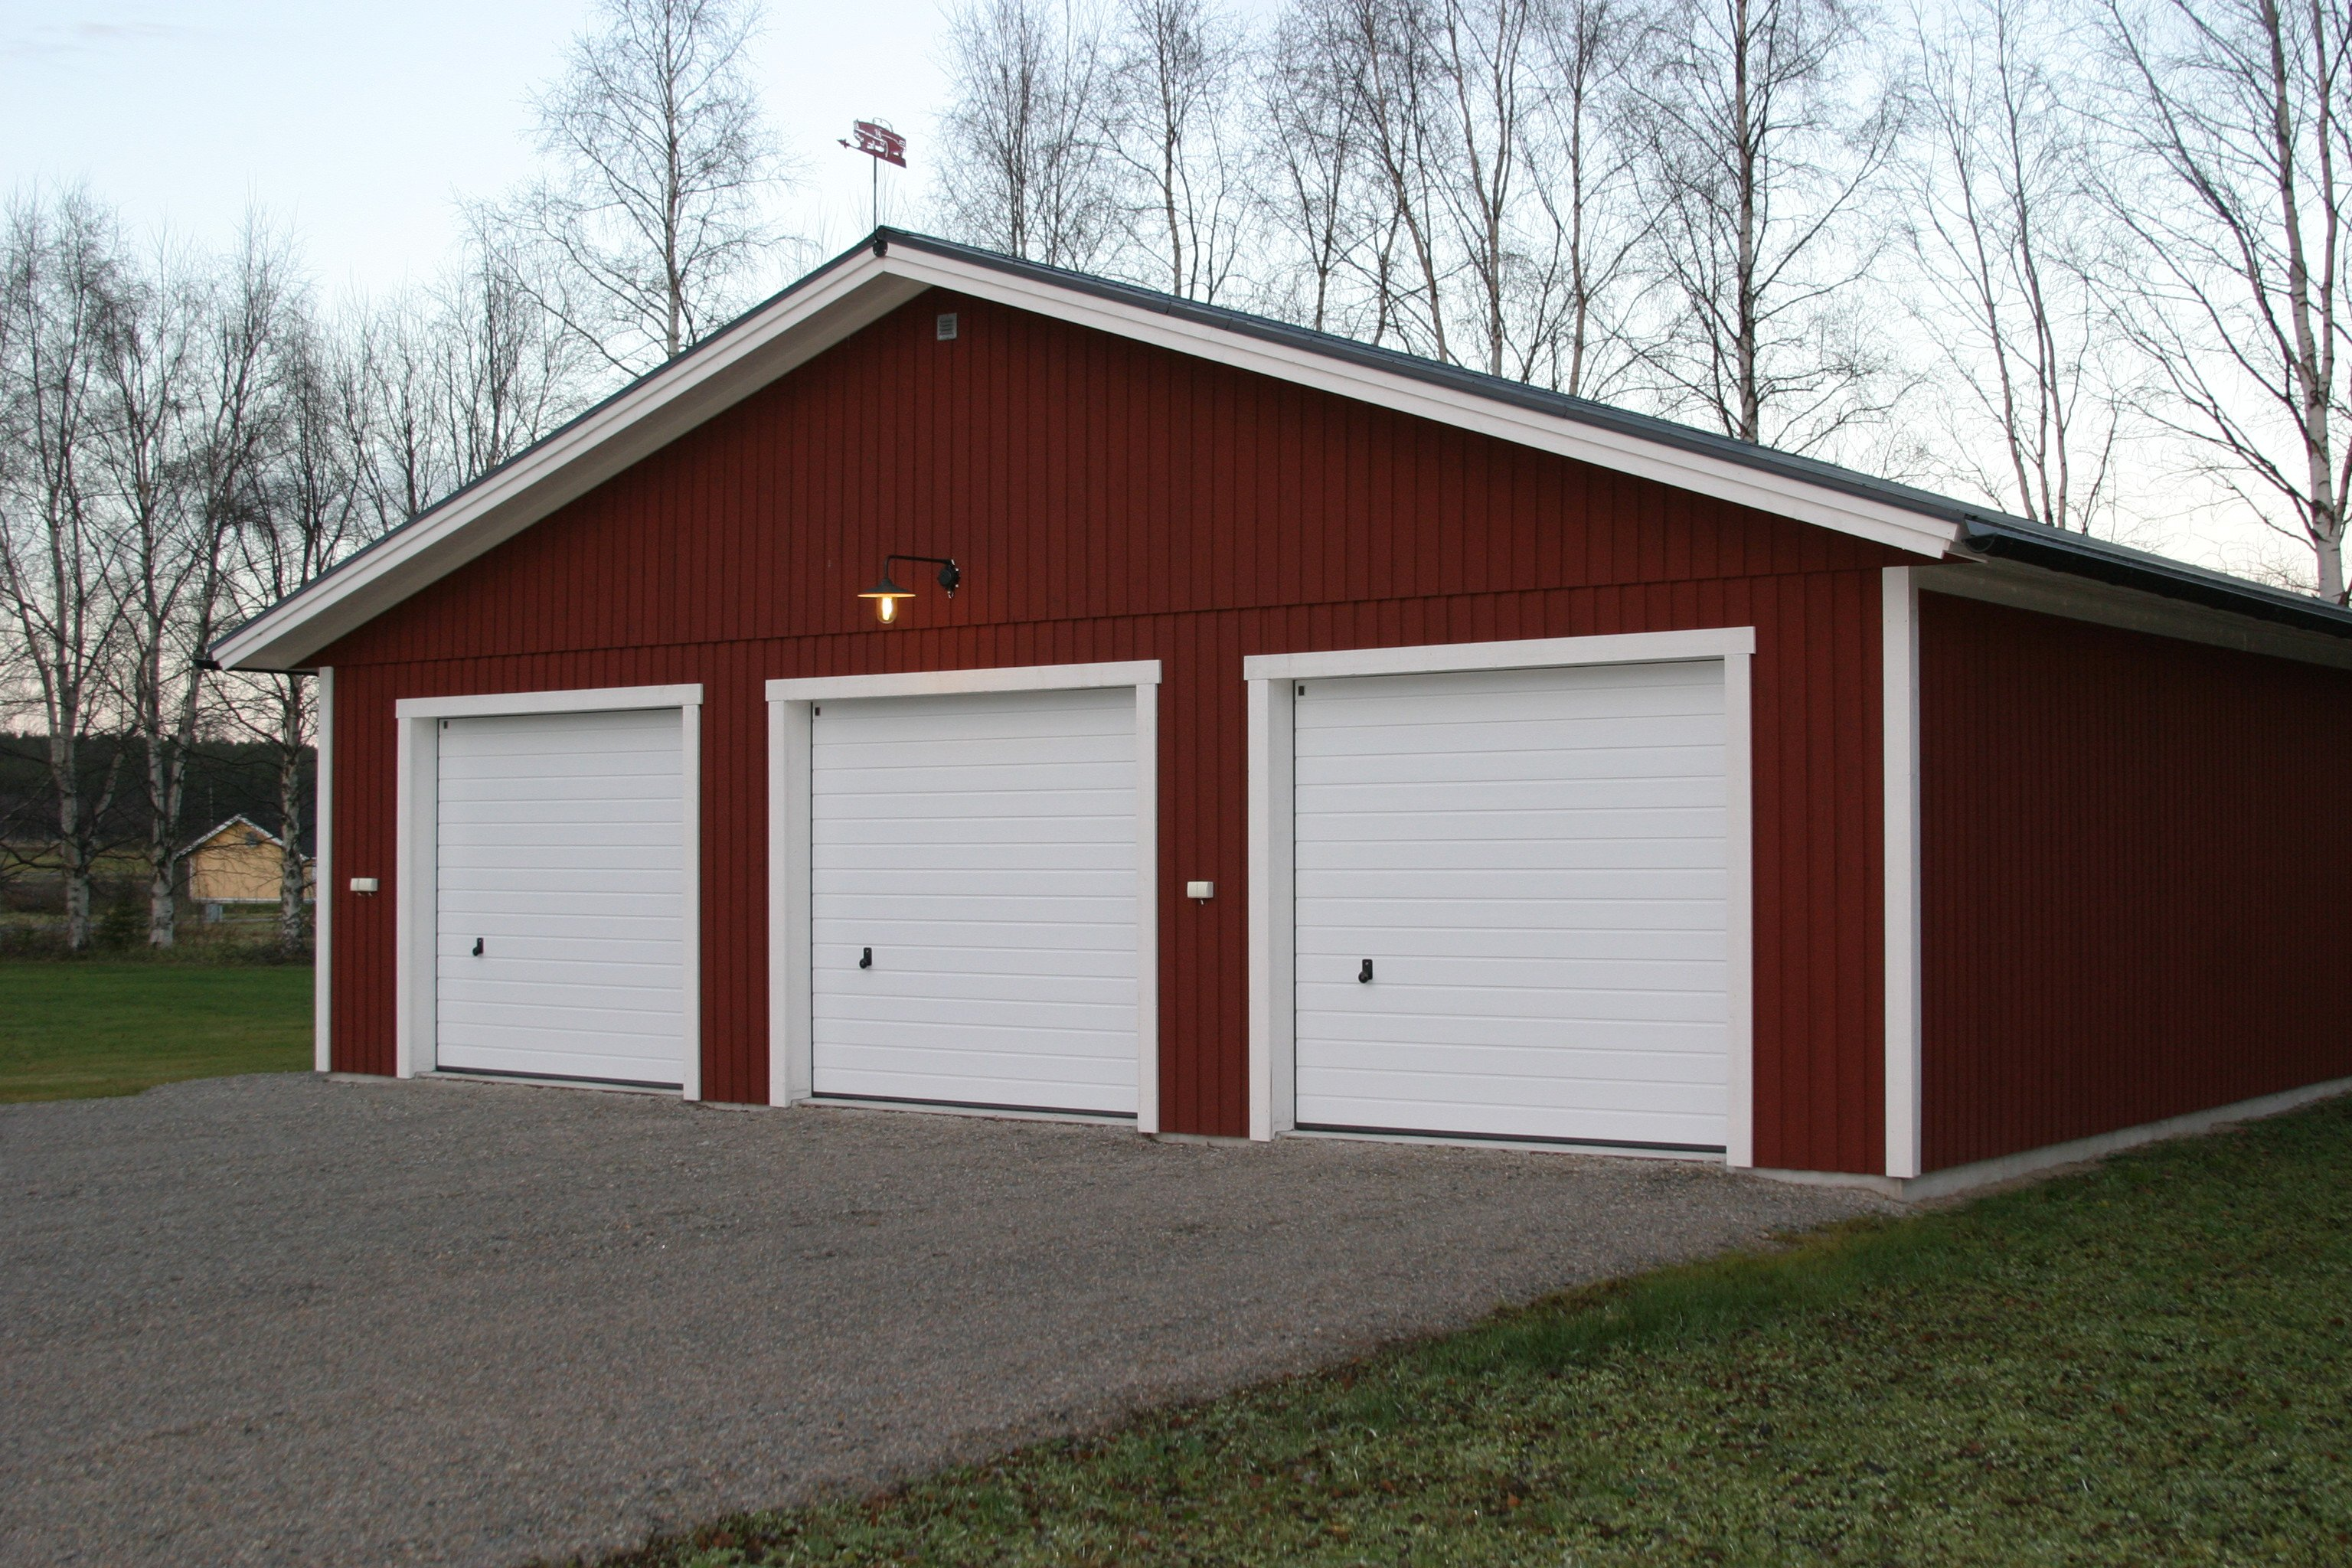 Metal Building Garage Apartment Ideal Choice For Your Vehicle Parking Using Home Depot Metal Garage Designs Story With Living Quarters additionally Attefallshus Diana U1144mm besides Pole Barn Construction as well B8e36d4c921f3376 Cool Garages Detached Garage With Bonus Room Plans further Dormer Windows. on carport with loft